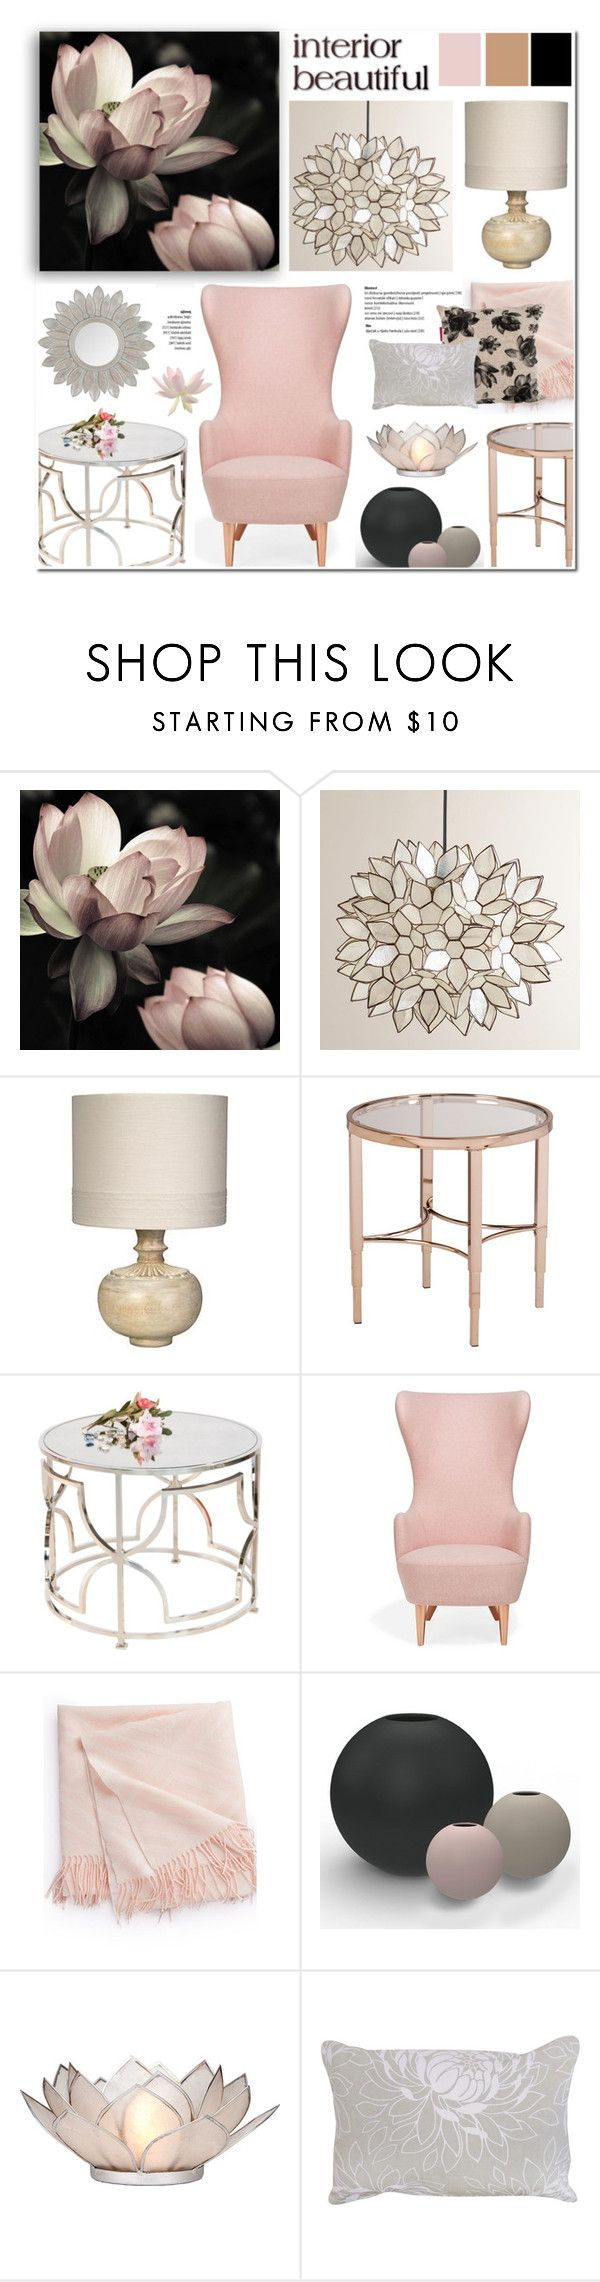 """Lotus inspired home decor"" by anyasdesigns on Polyvore featuring interior, interiors, interior design, home, home decor, interior decorating, Cost Plus World Market, Jamie Young, Worlds Away and Tom Dixon"